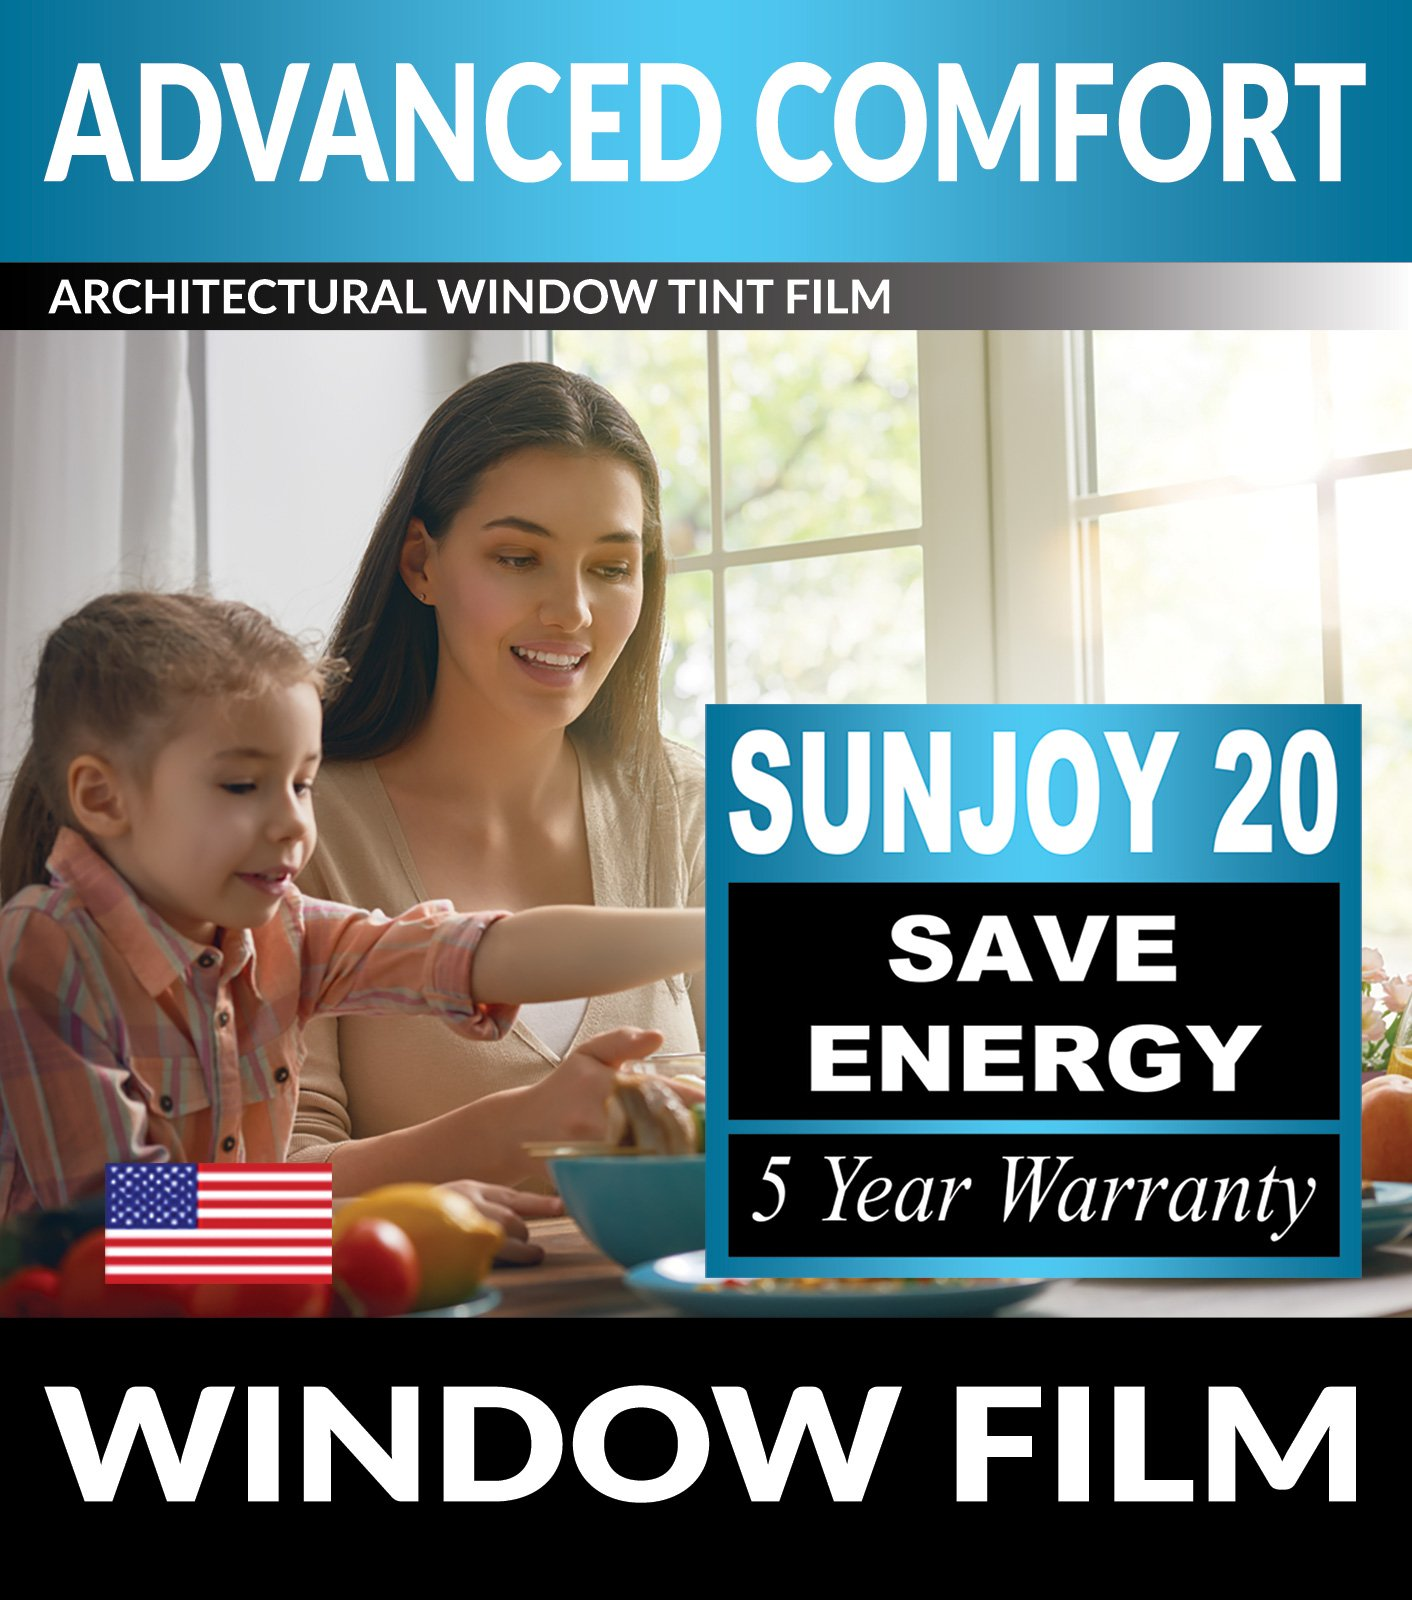 SunJoy 20 Home Commercial Window Tint Film Solar UV Glare Heat Control Privacy - 40 Inch By 10 Feet by The Black Box Tint (Image #1)